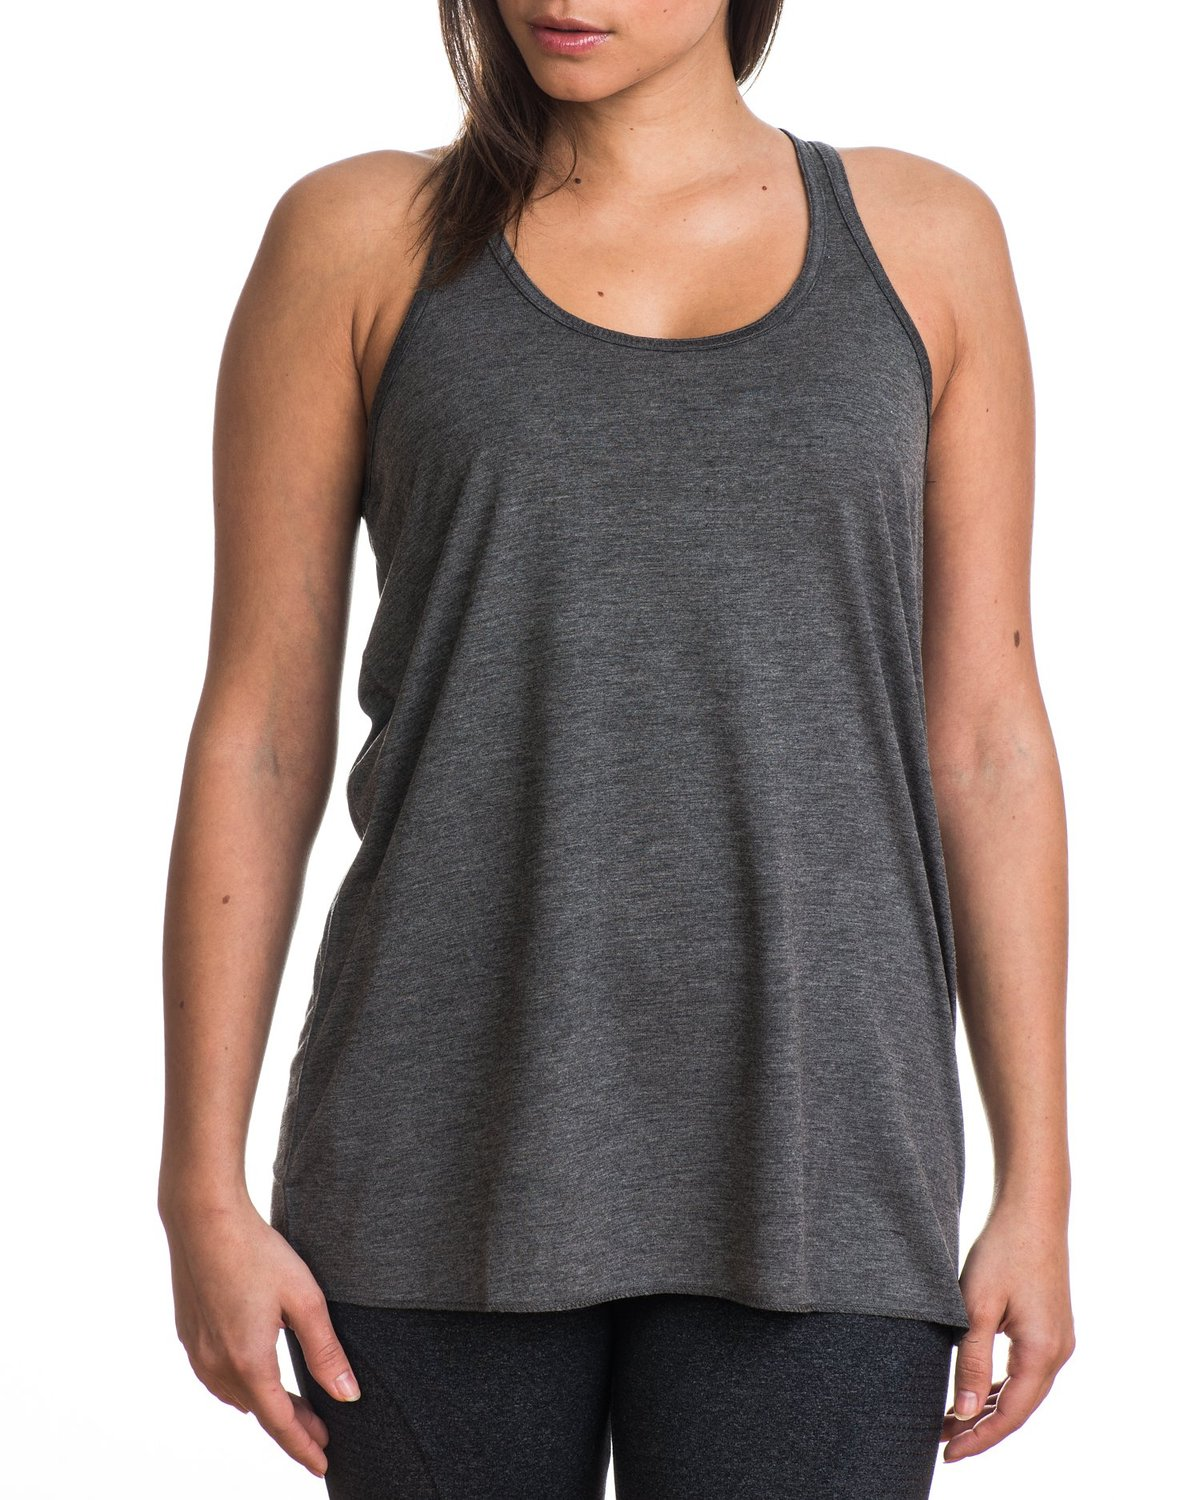 Bulletin ladies' active solid color tank top at amazon women's clothing store: